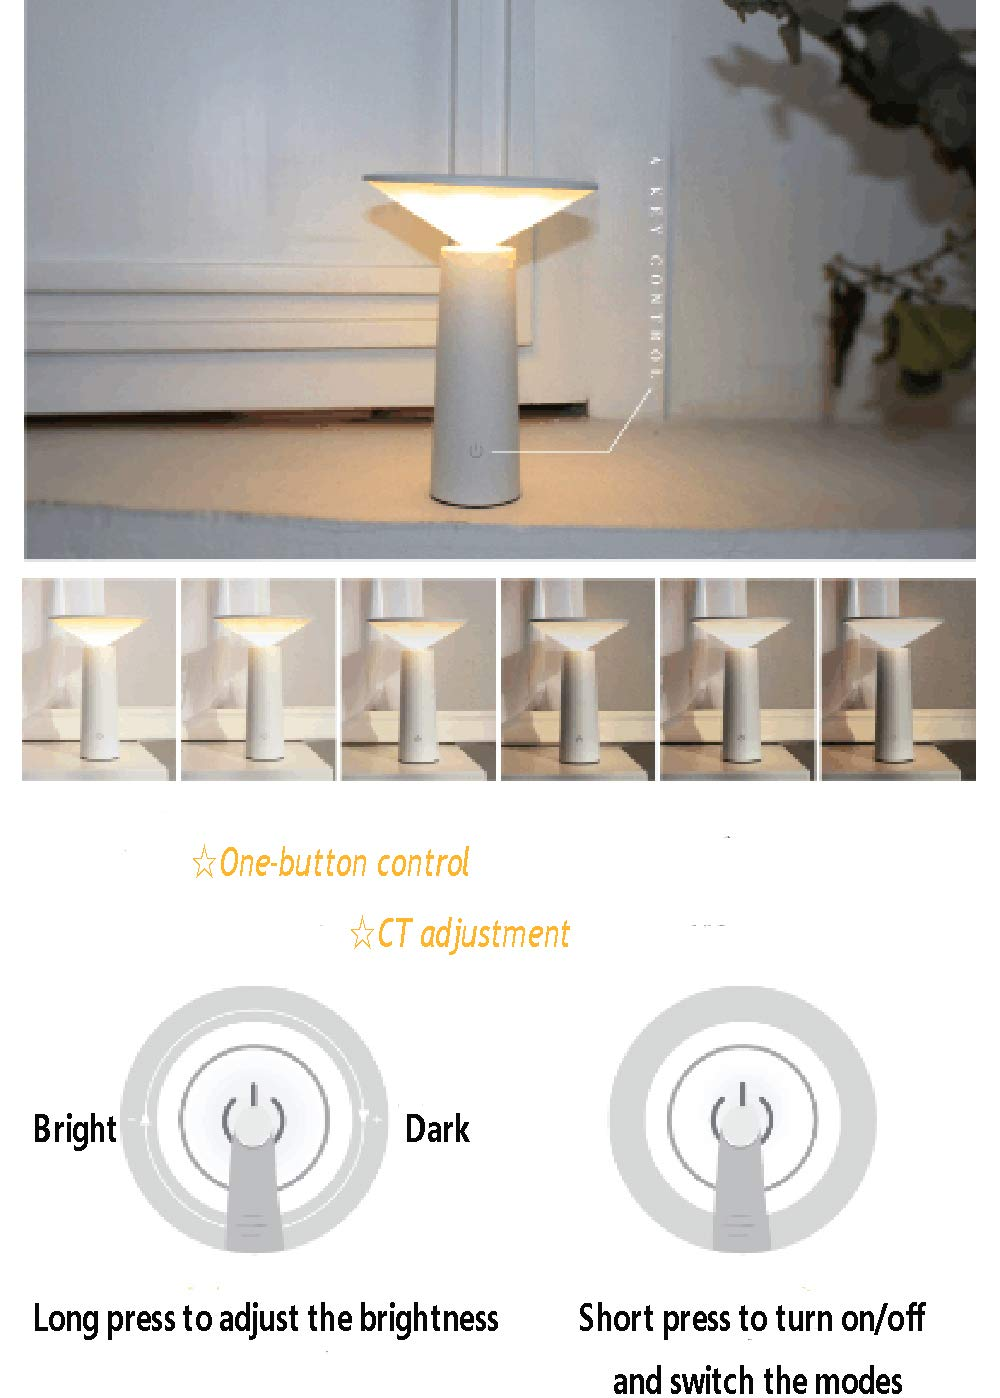 Book Light, Eye-Caring Table Lamps,Book lamp,Desk lamp Modern Minimalist Night Lights,Dimmable Office Lamp with USB Charging Port, Touch Control Sensitive, 3Color Modes,Bedroom Lights